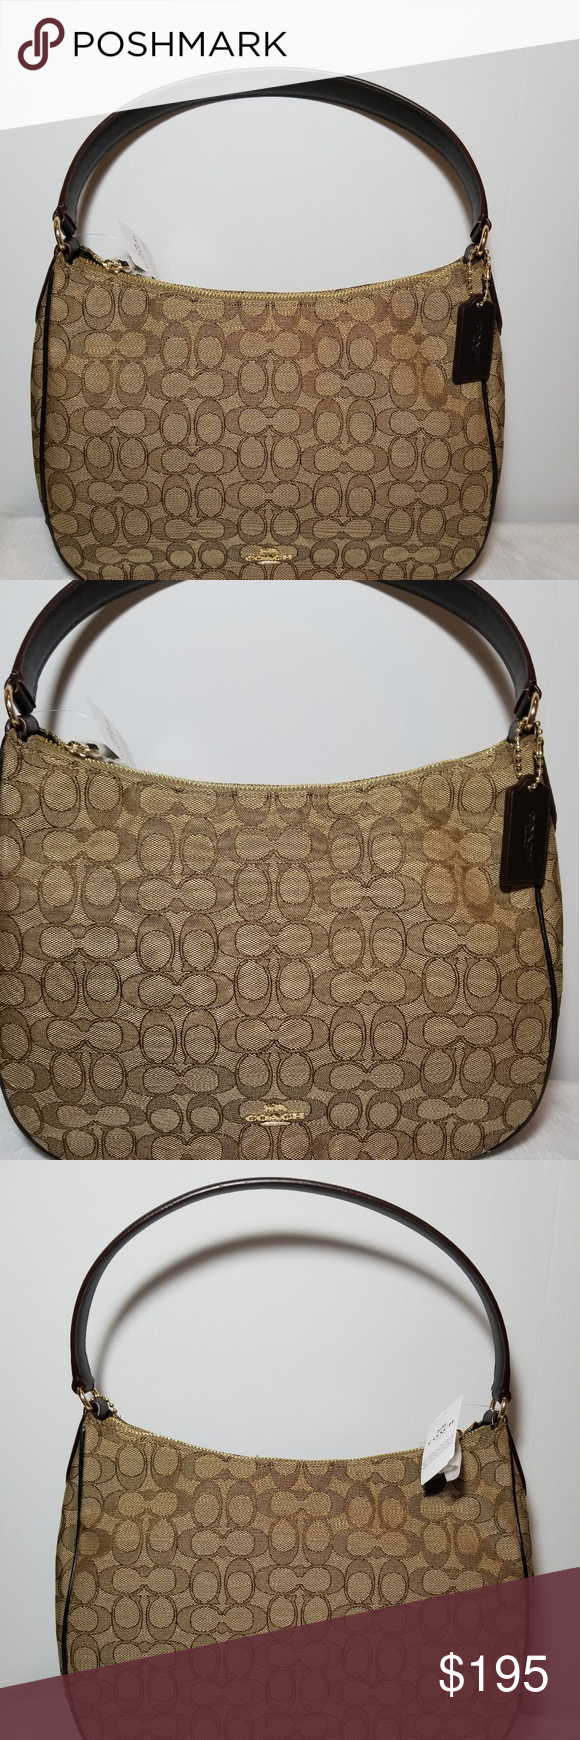 80be4a45b7ee coach zip shoulder bag in signature jacquard coach zip shoulder bag in signature  jacquard with smooth leather details. inside cellphone and Multifunction ...